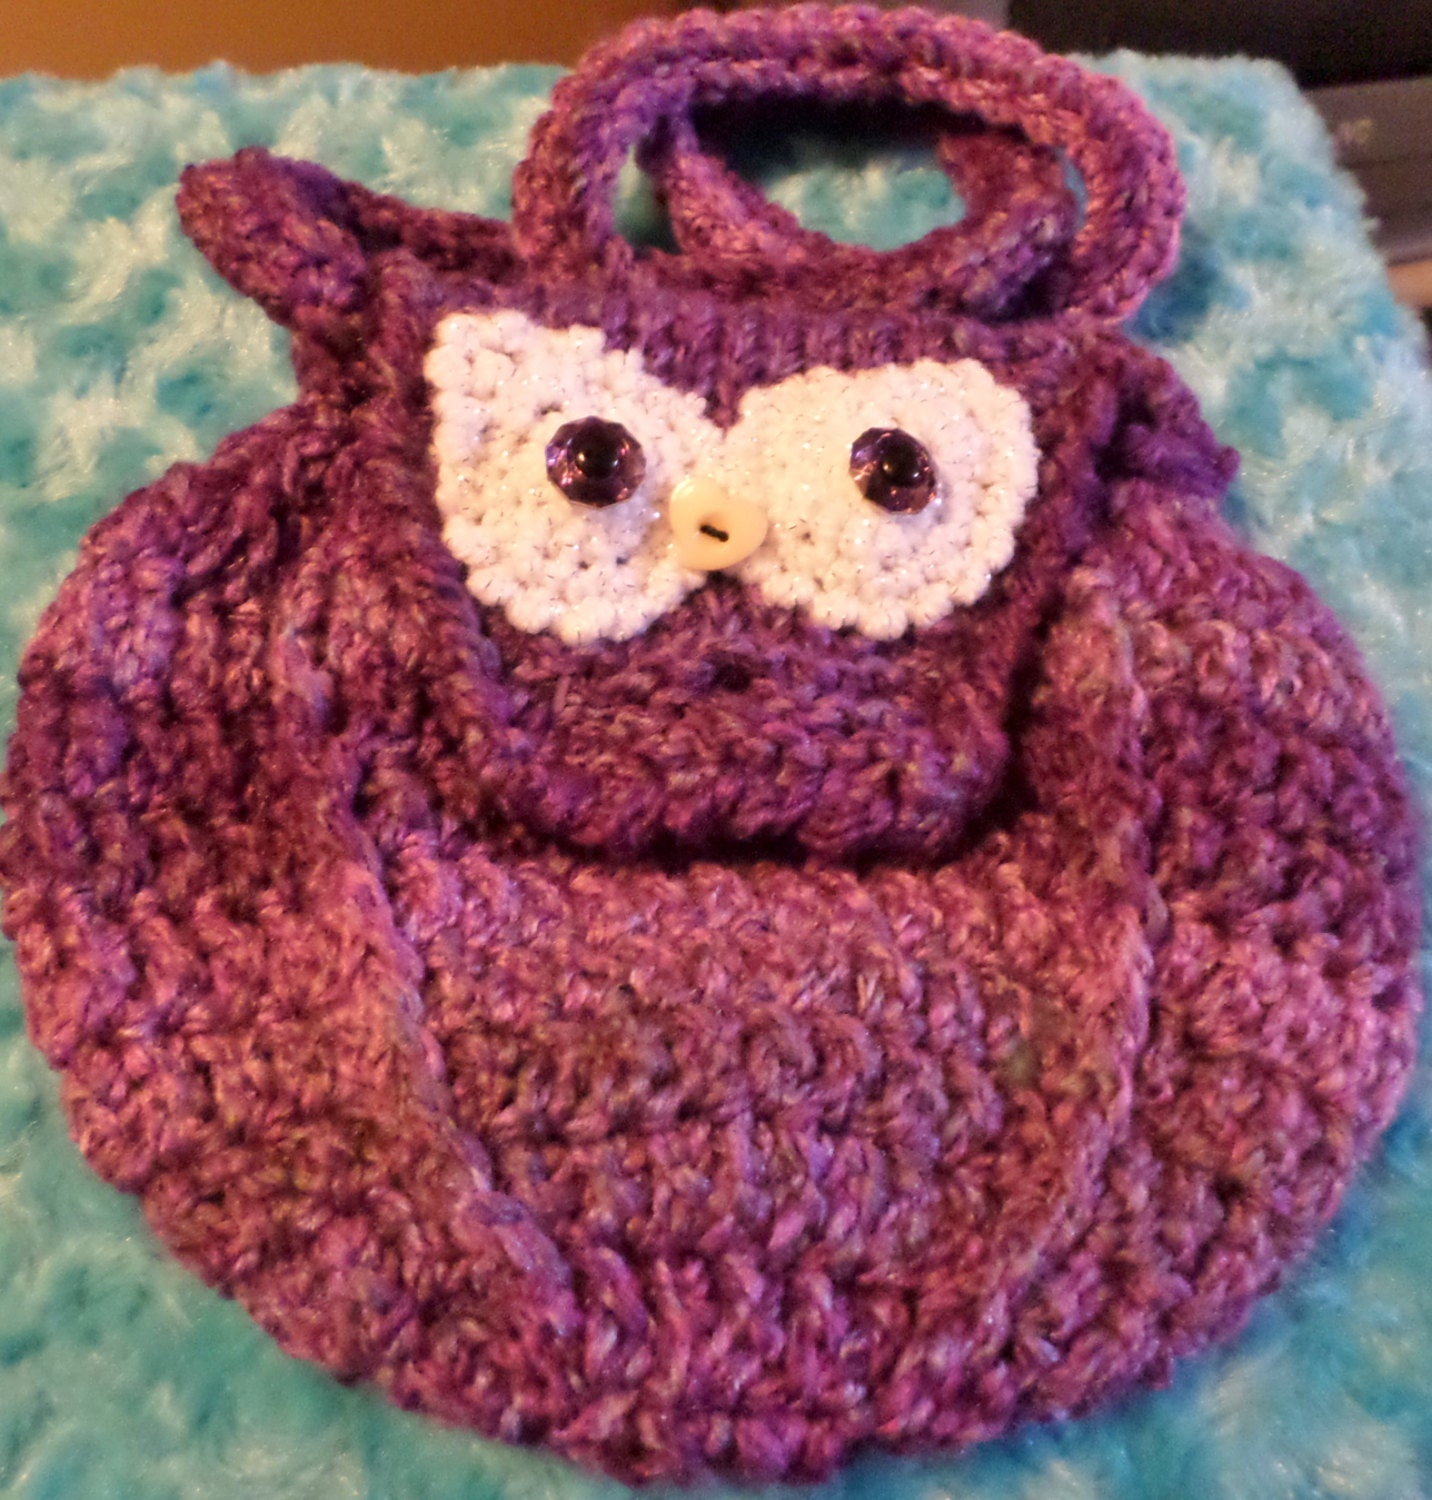 Owl Bag Knitting Pattern : Crocheted Knitted OWL BAG button closing purple with